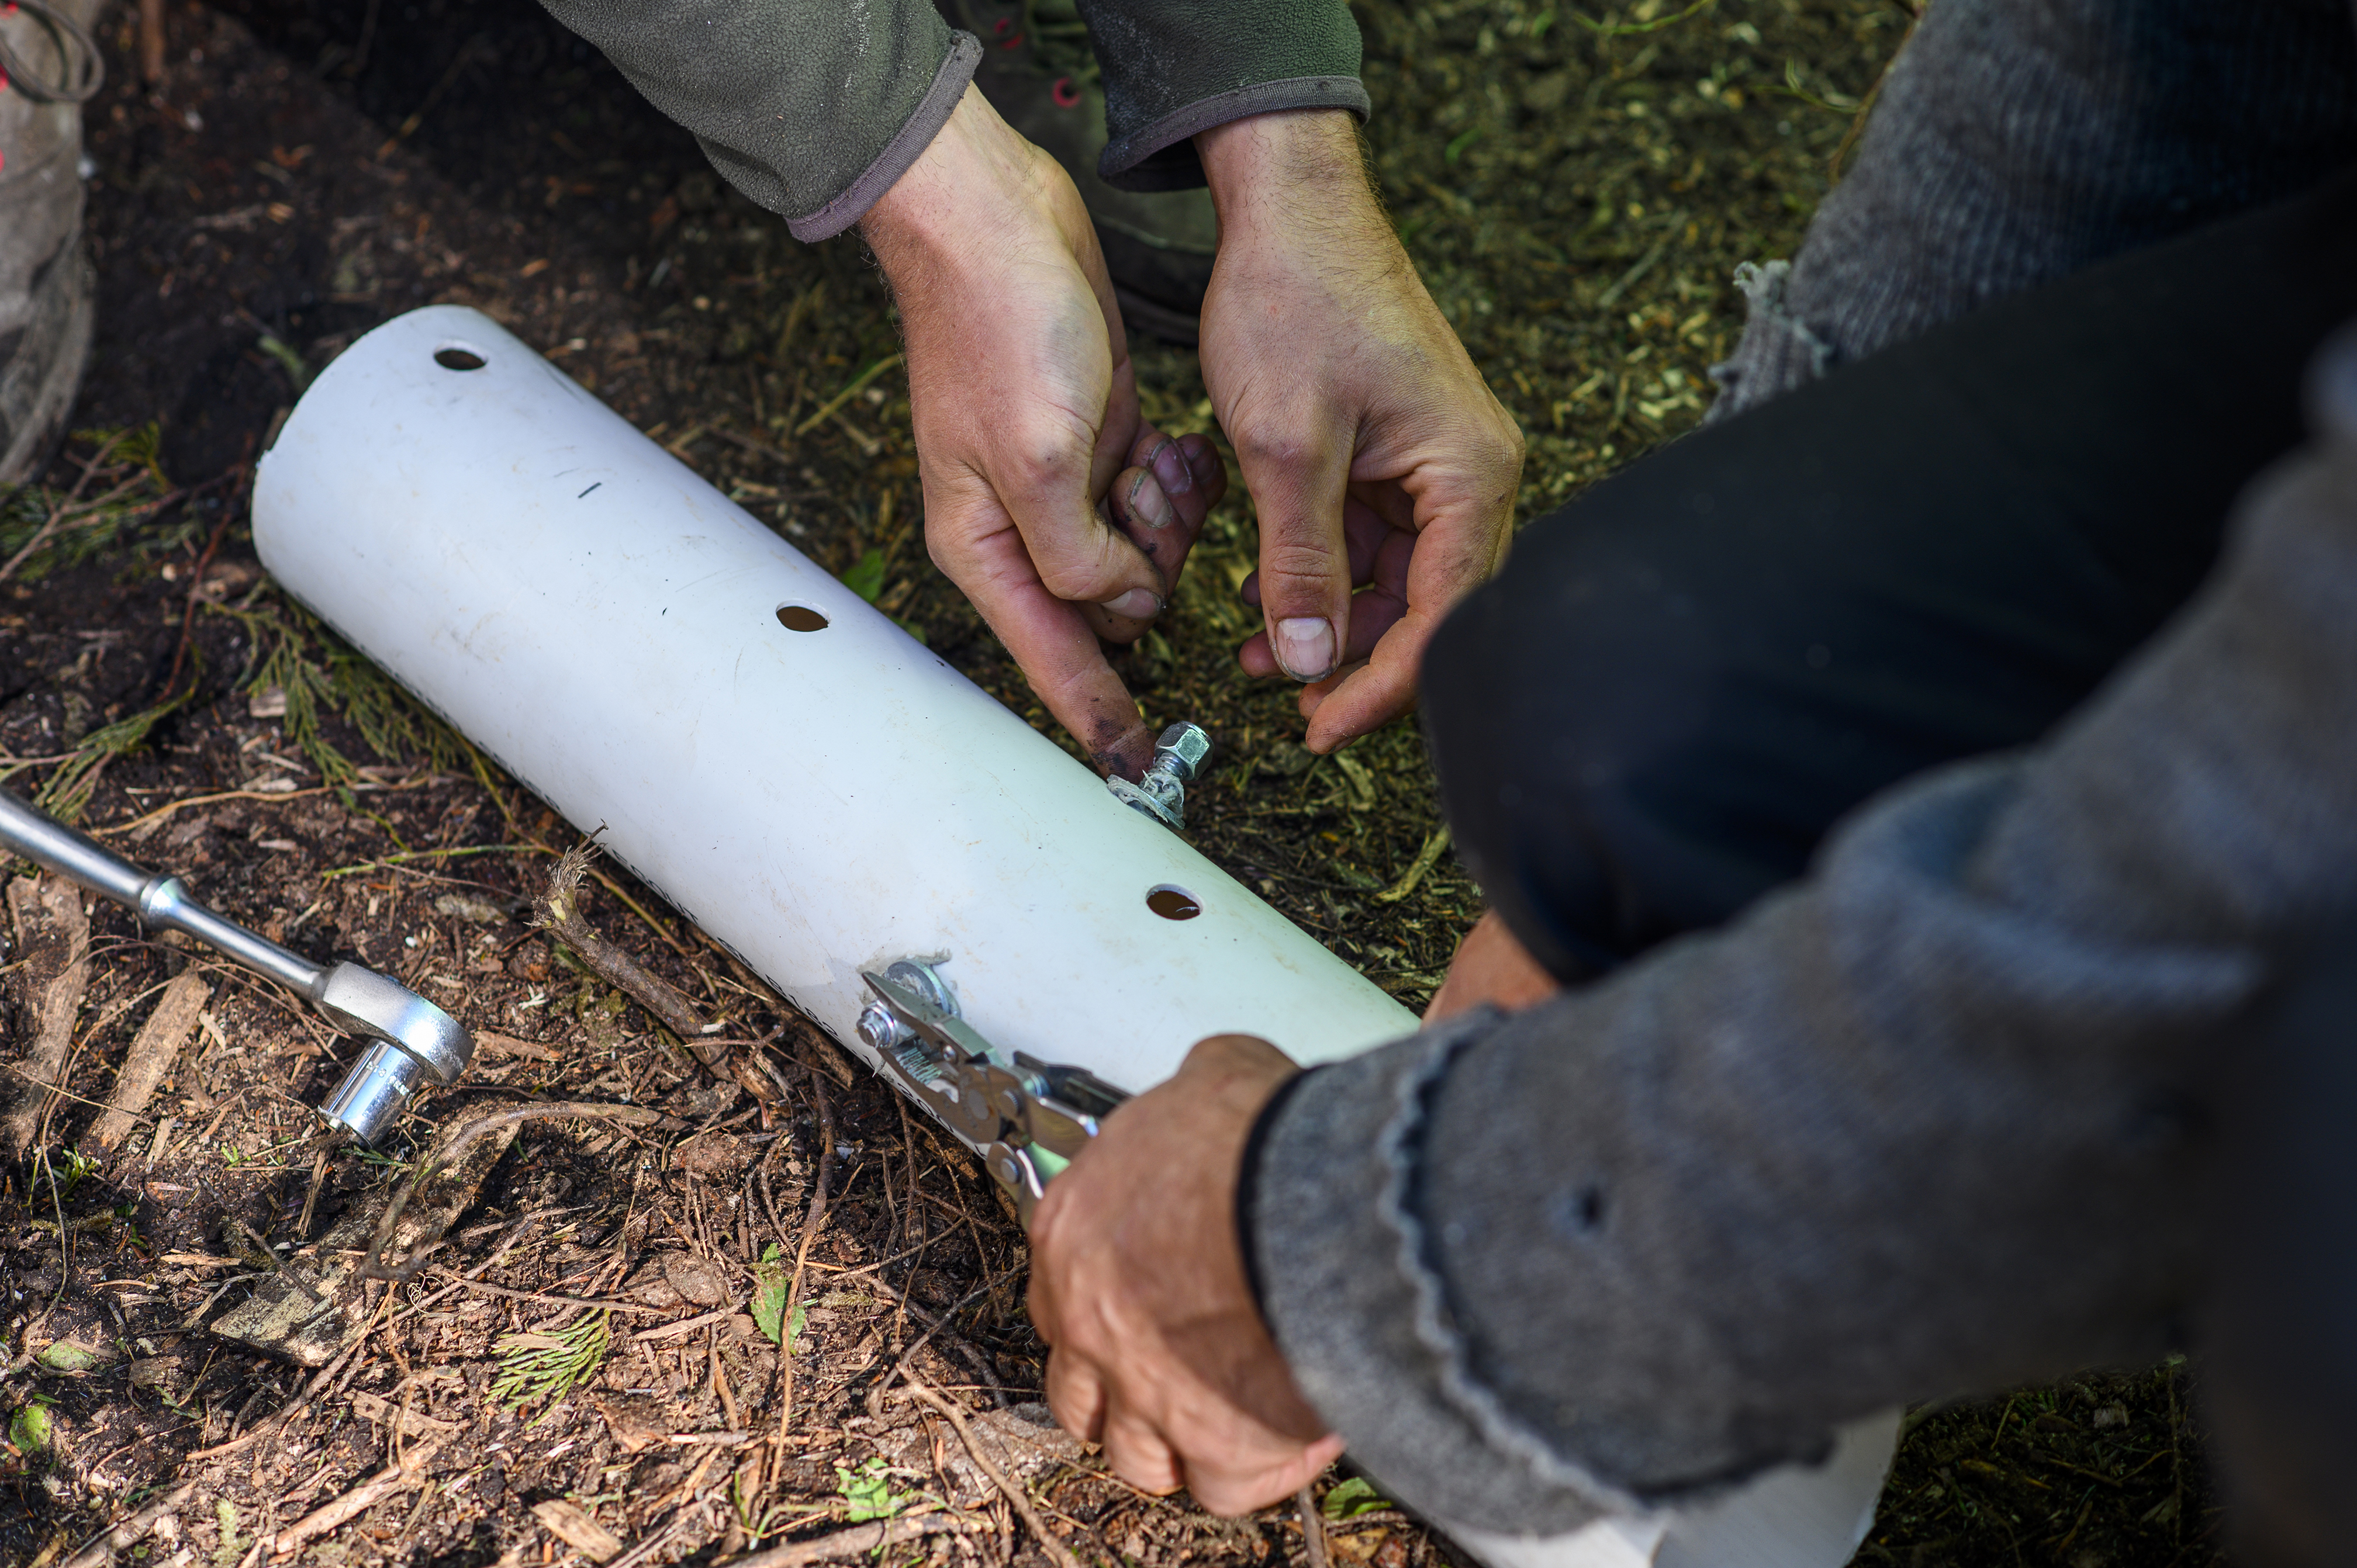 Activists use metal bars and glue to re-enforce PVC piping that will be cemented to the ground to thwart police and make it harder to remove the protesters from the camp. (Kieran Oudshoorn/CBC)